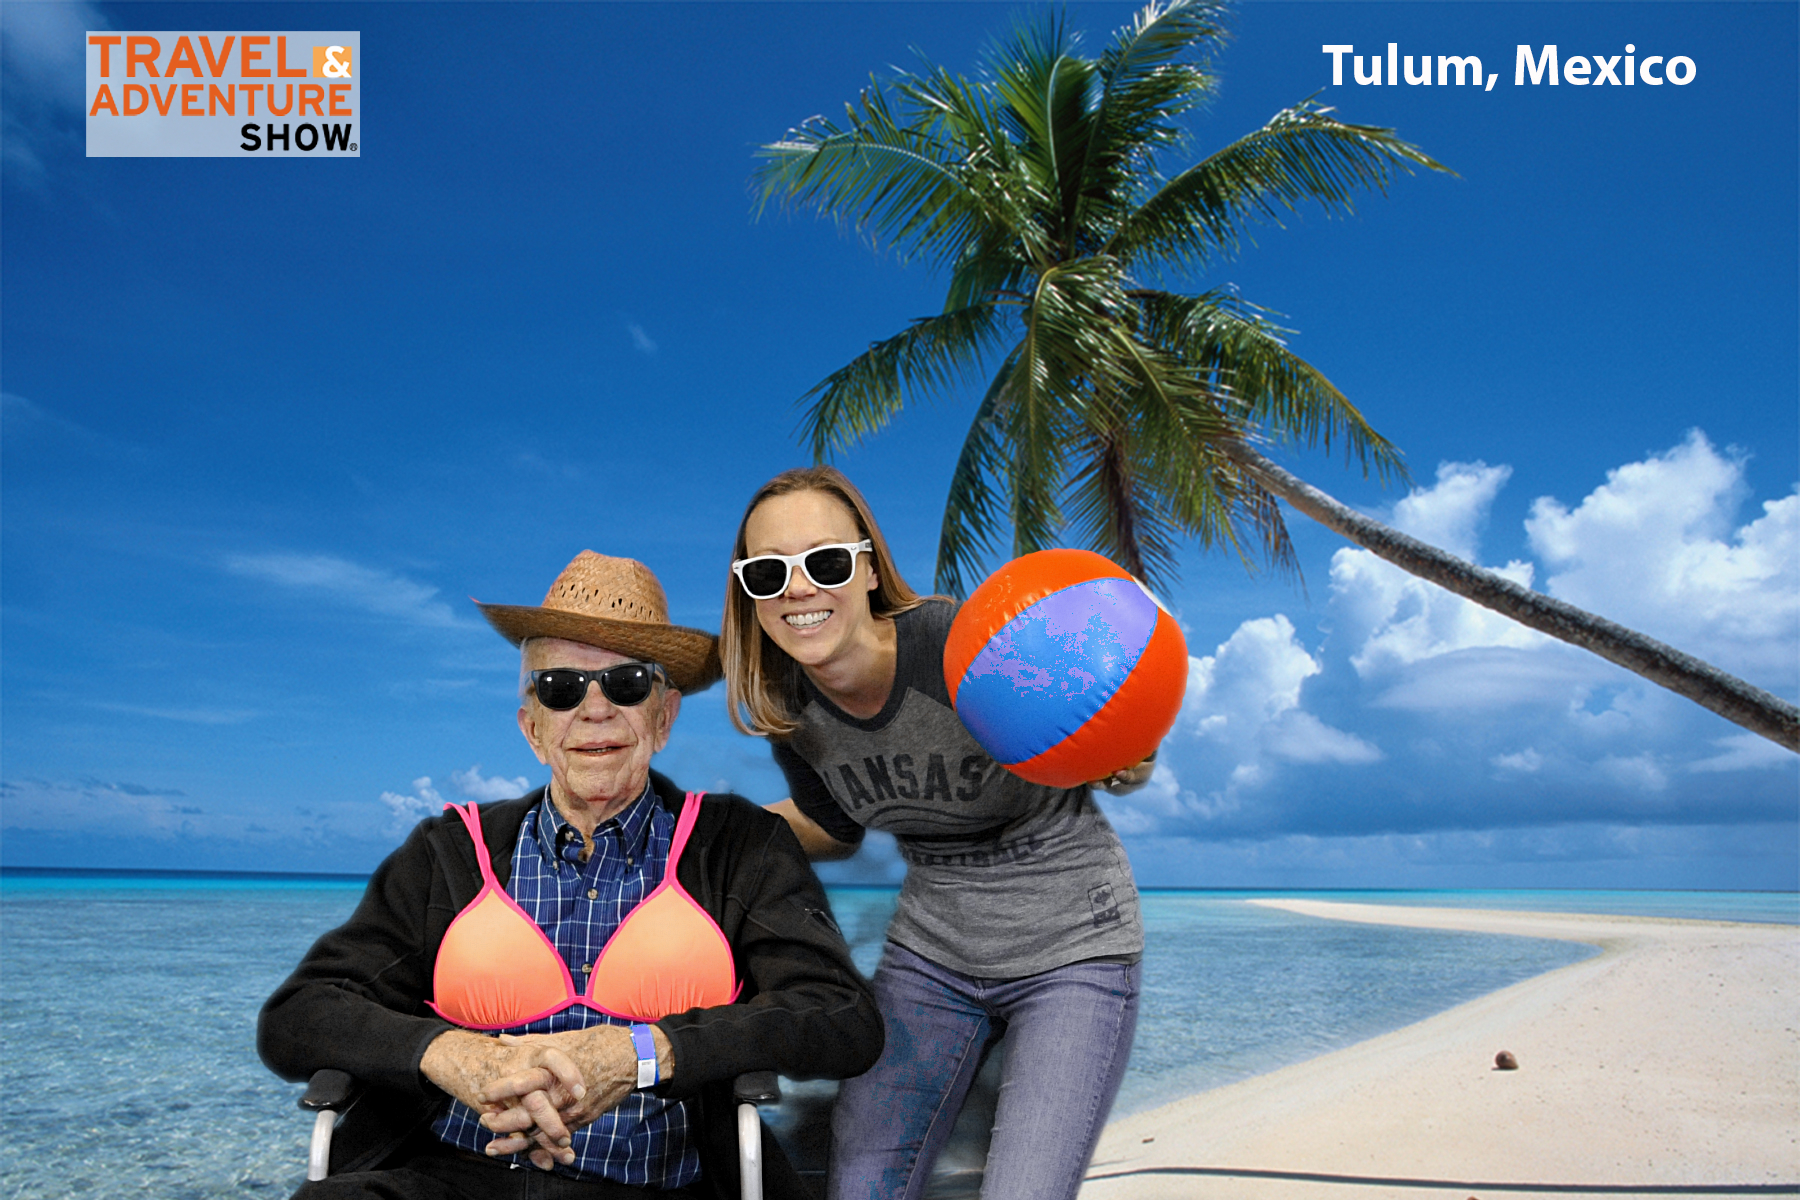 green screen event photography at Travel and Adventure Shows 8